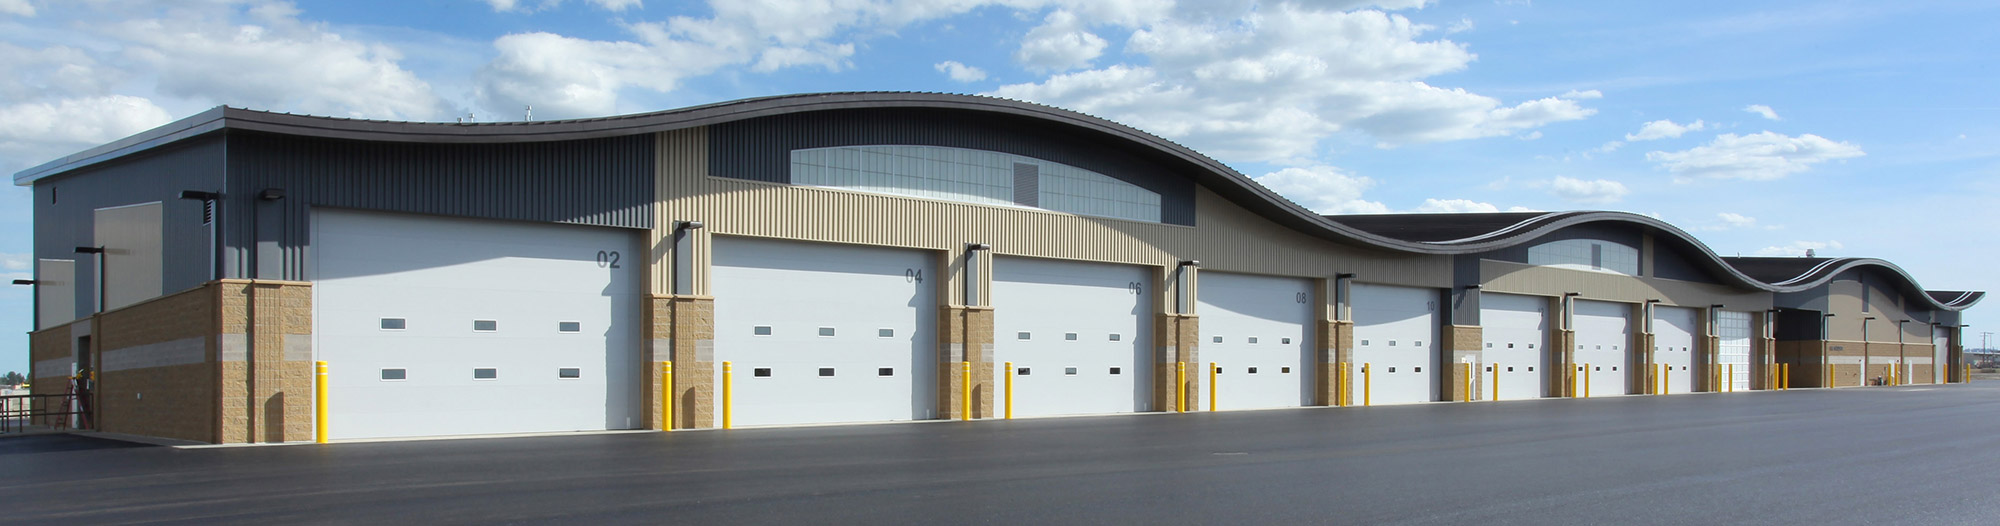 Commercial Garage And Overhead Door Repair Spokane And Coeur Dalene